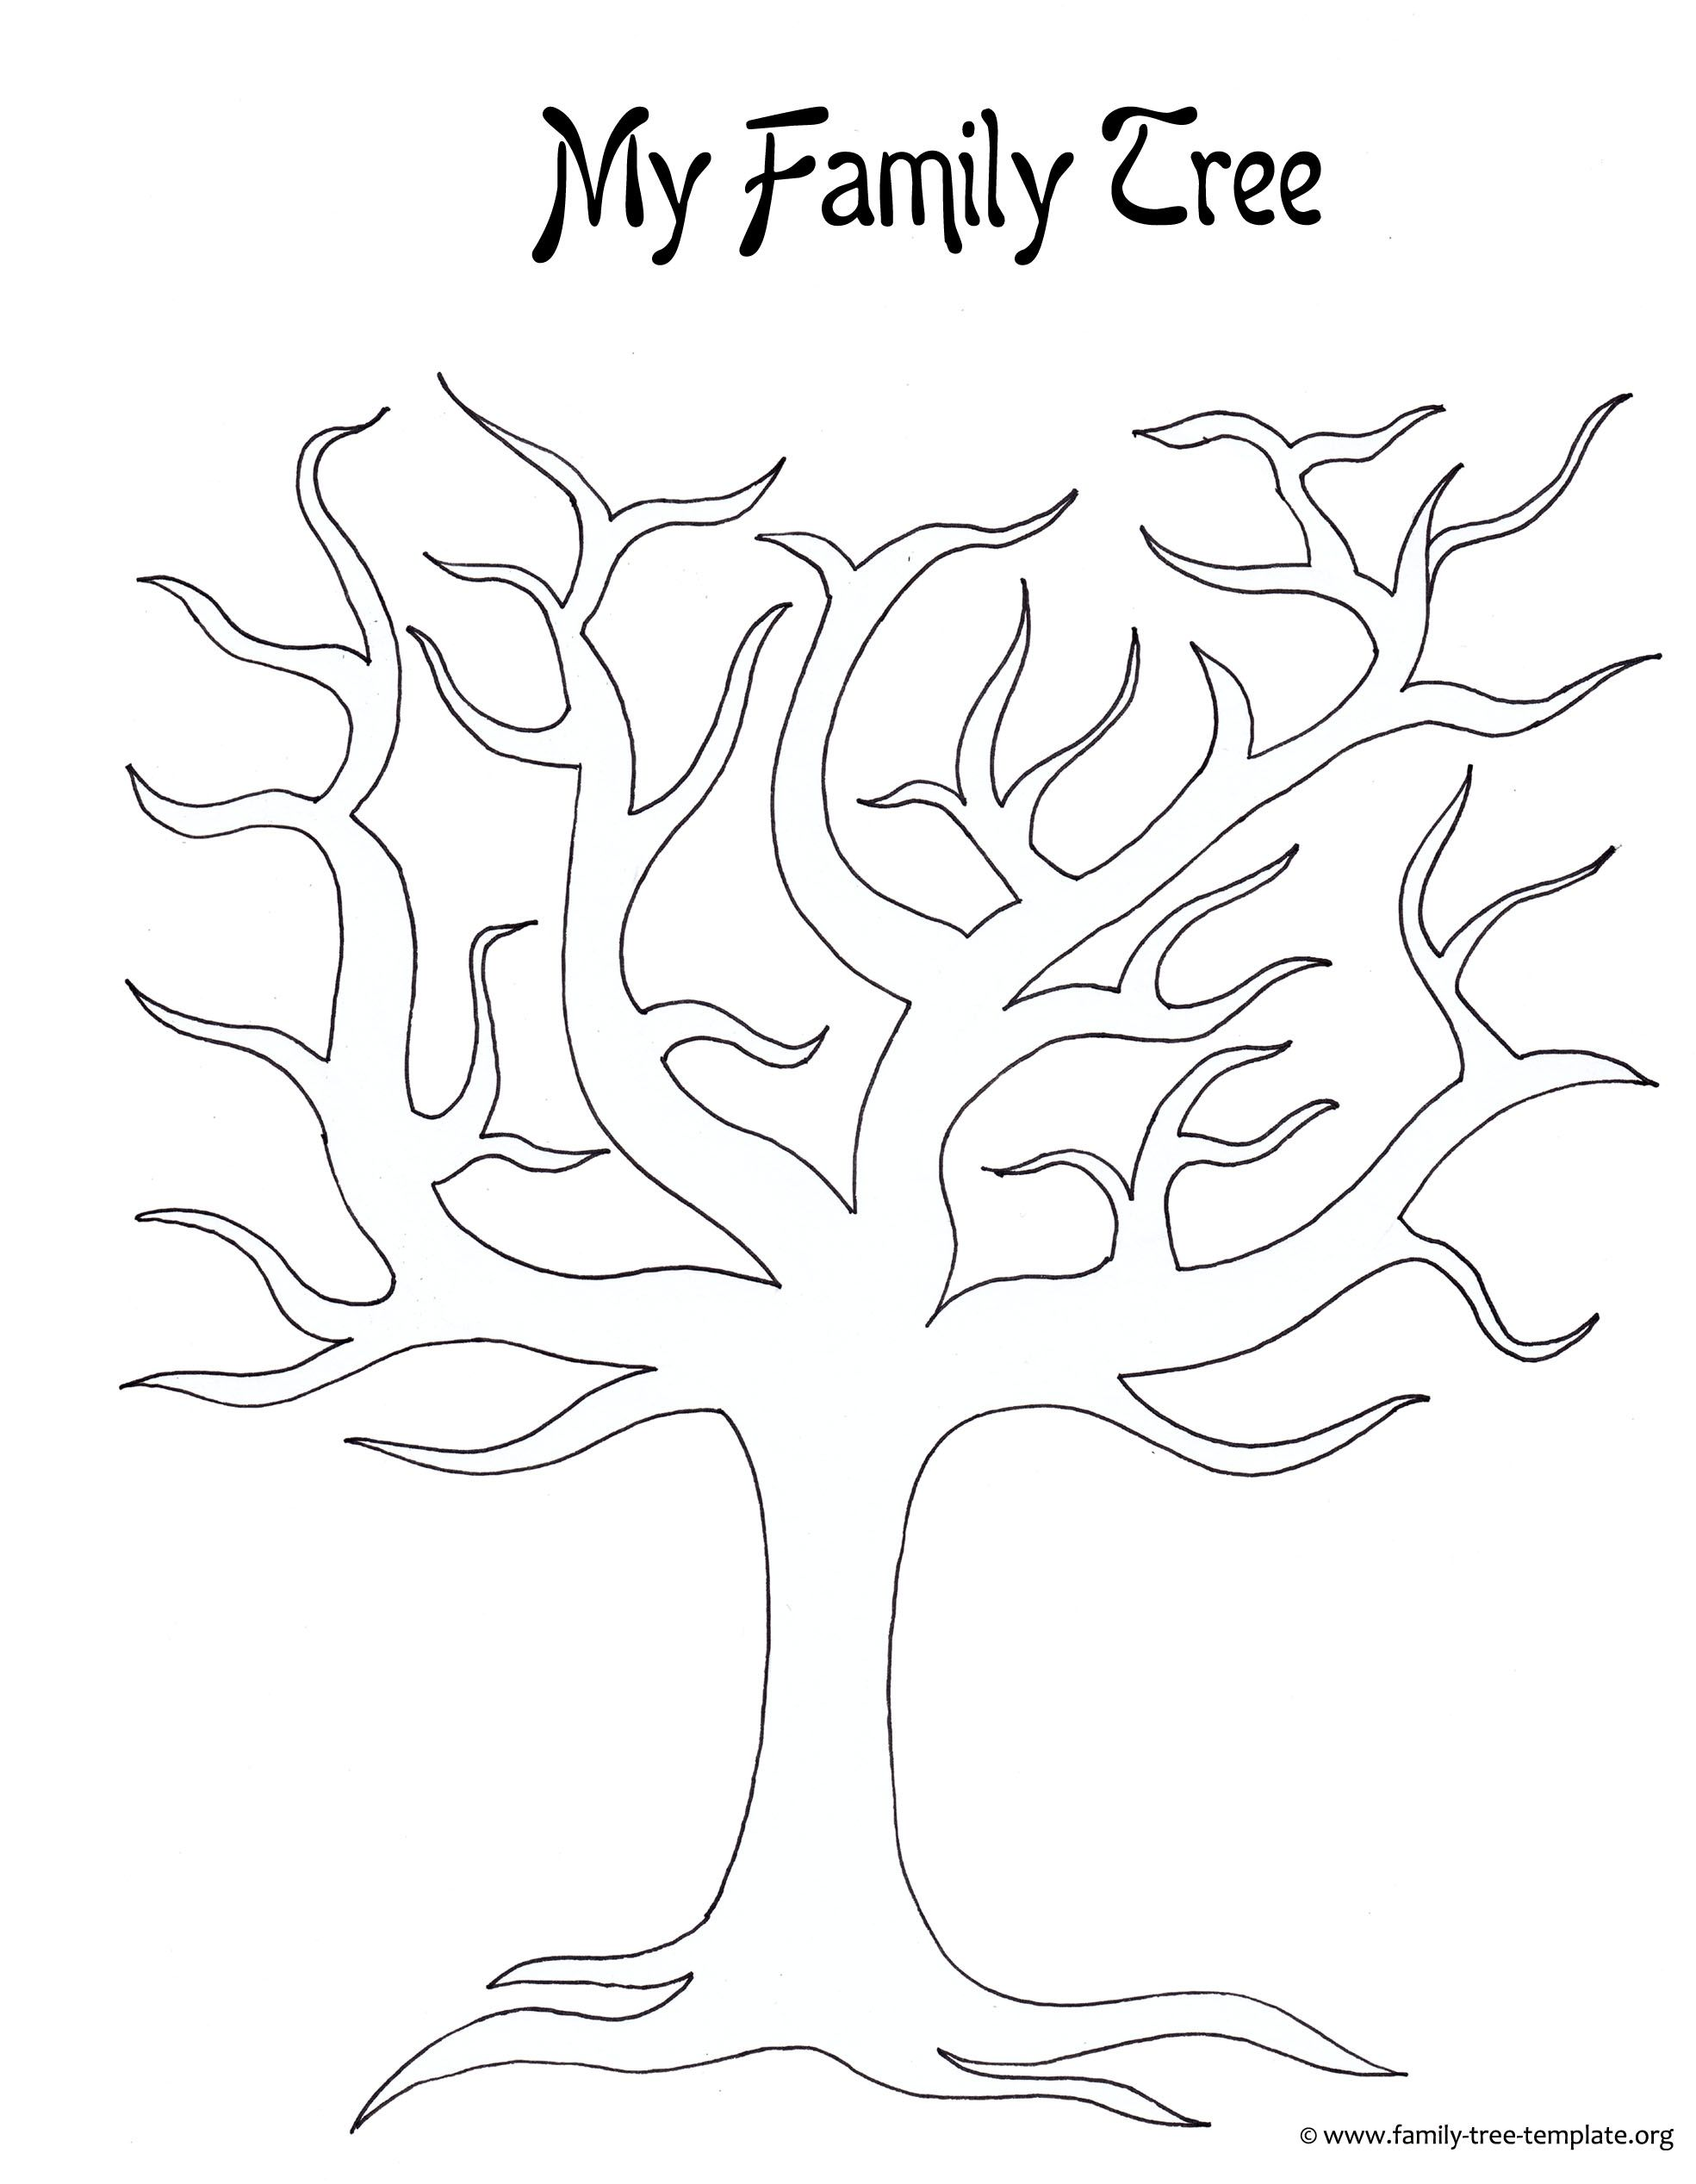 Blank Family Tree Template  Yahoo Image Search Results